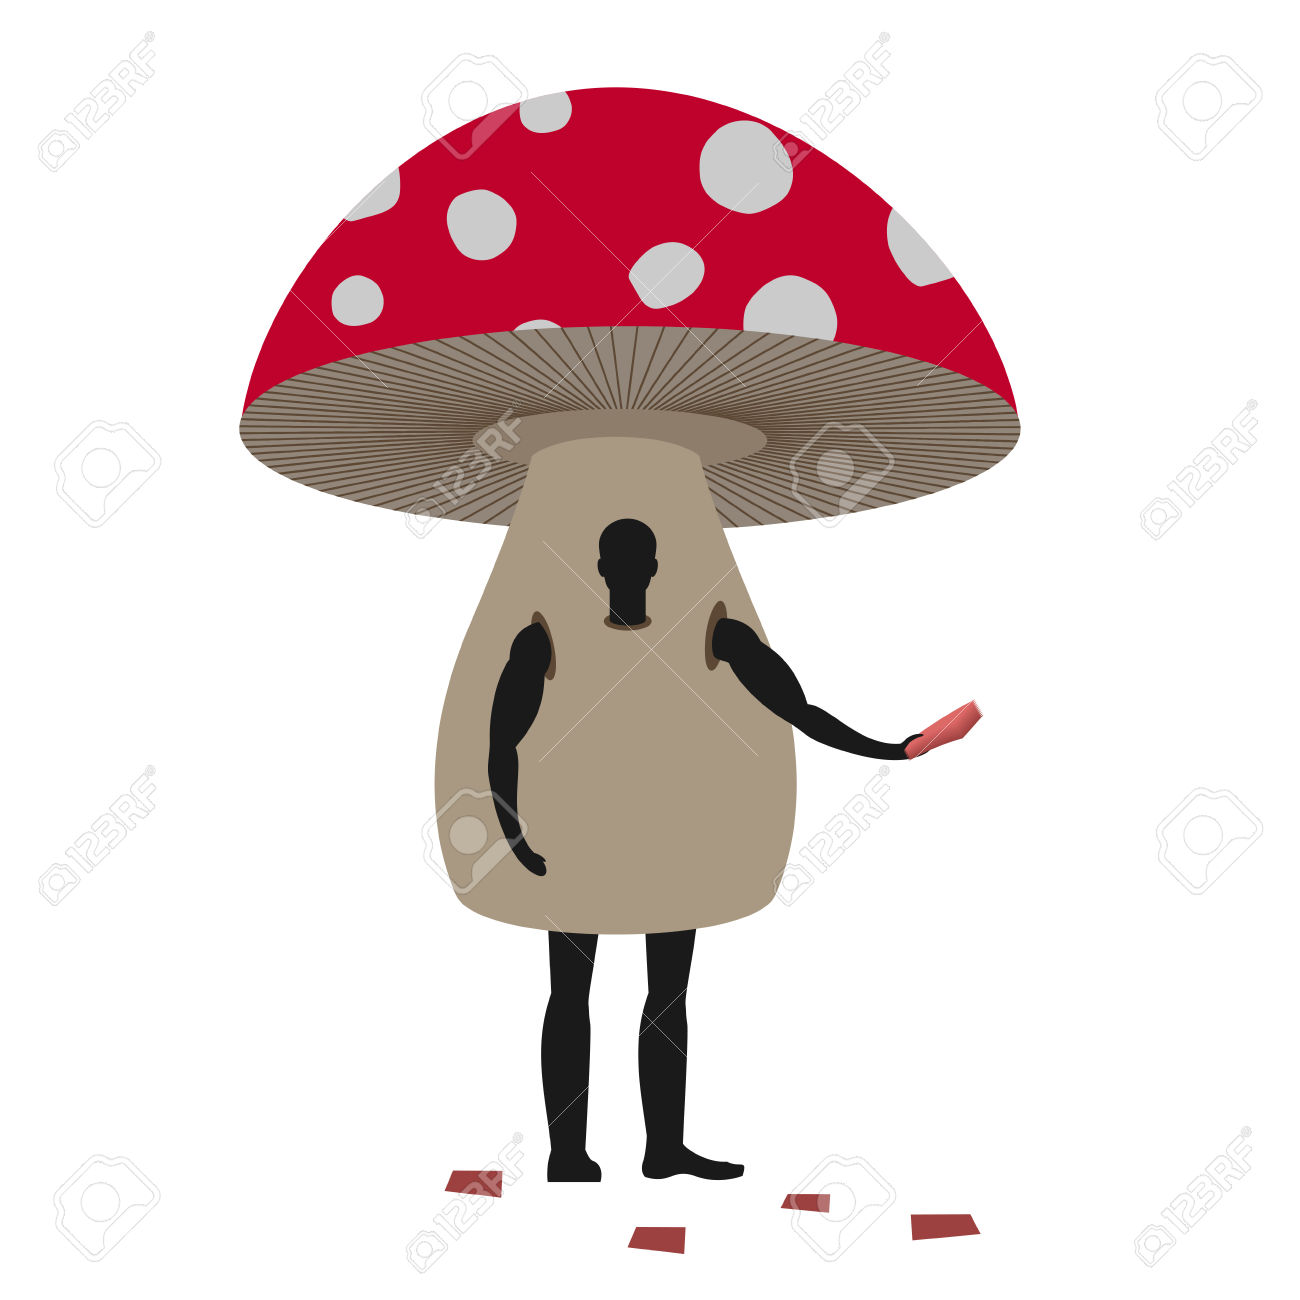 Mushroom Man Mascot Promoter. Male In Suit Amanita Distributes.